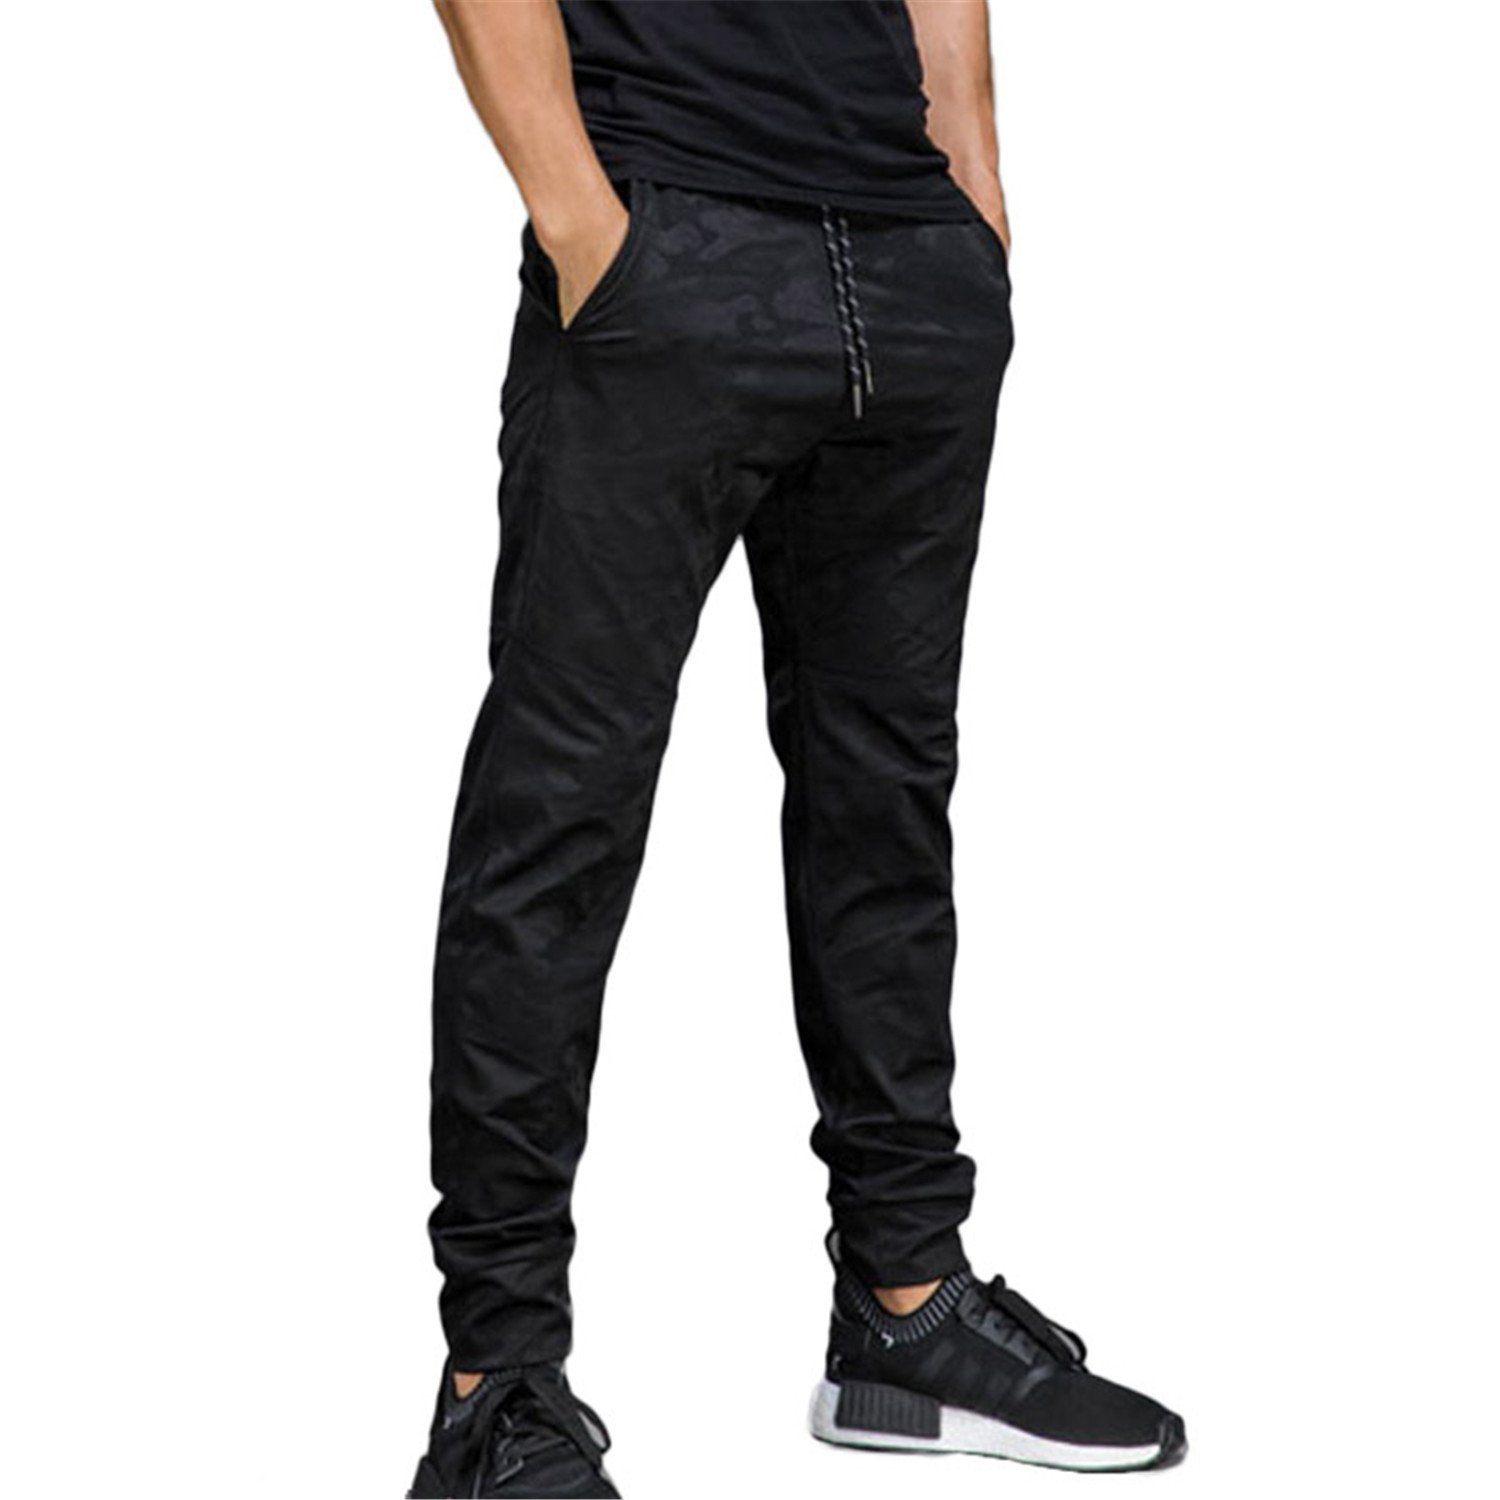 Pajamasea Jogger Pants Men's Active Slim Fit Basic Flat-Front Black Stylish Ankle Trousers Casual Skinny Bottoms Sweatpants